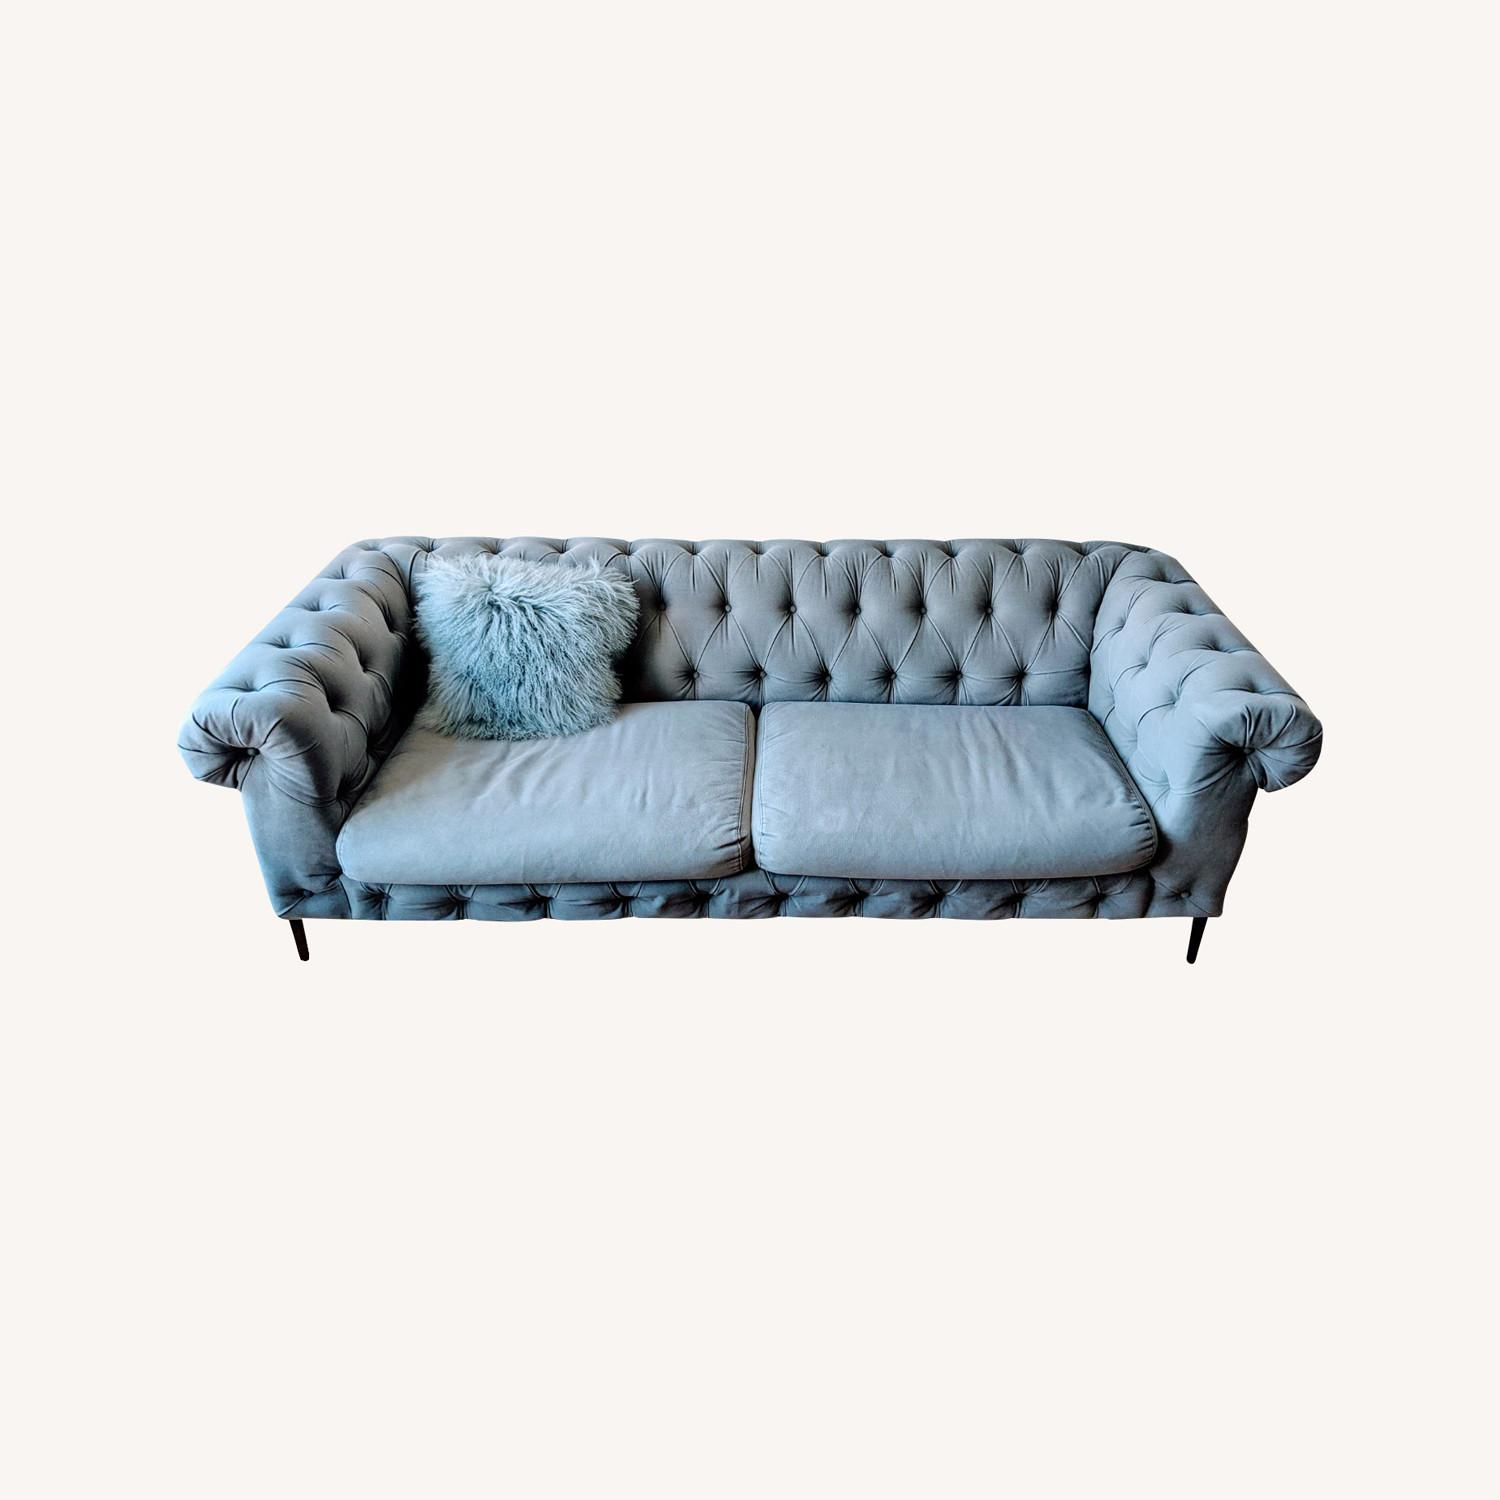 Anthropologie Canal Tufted Sofa - image-7